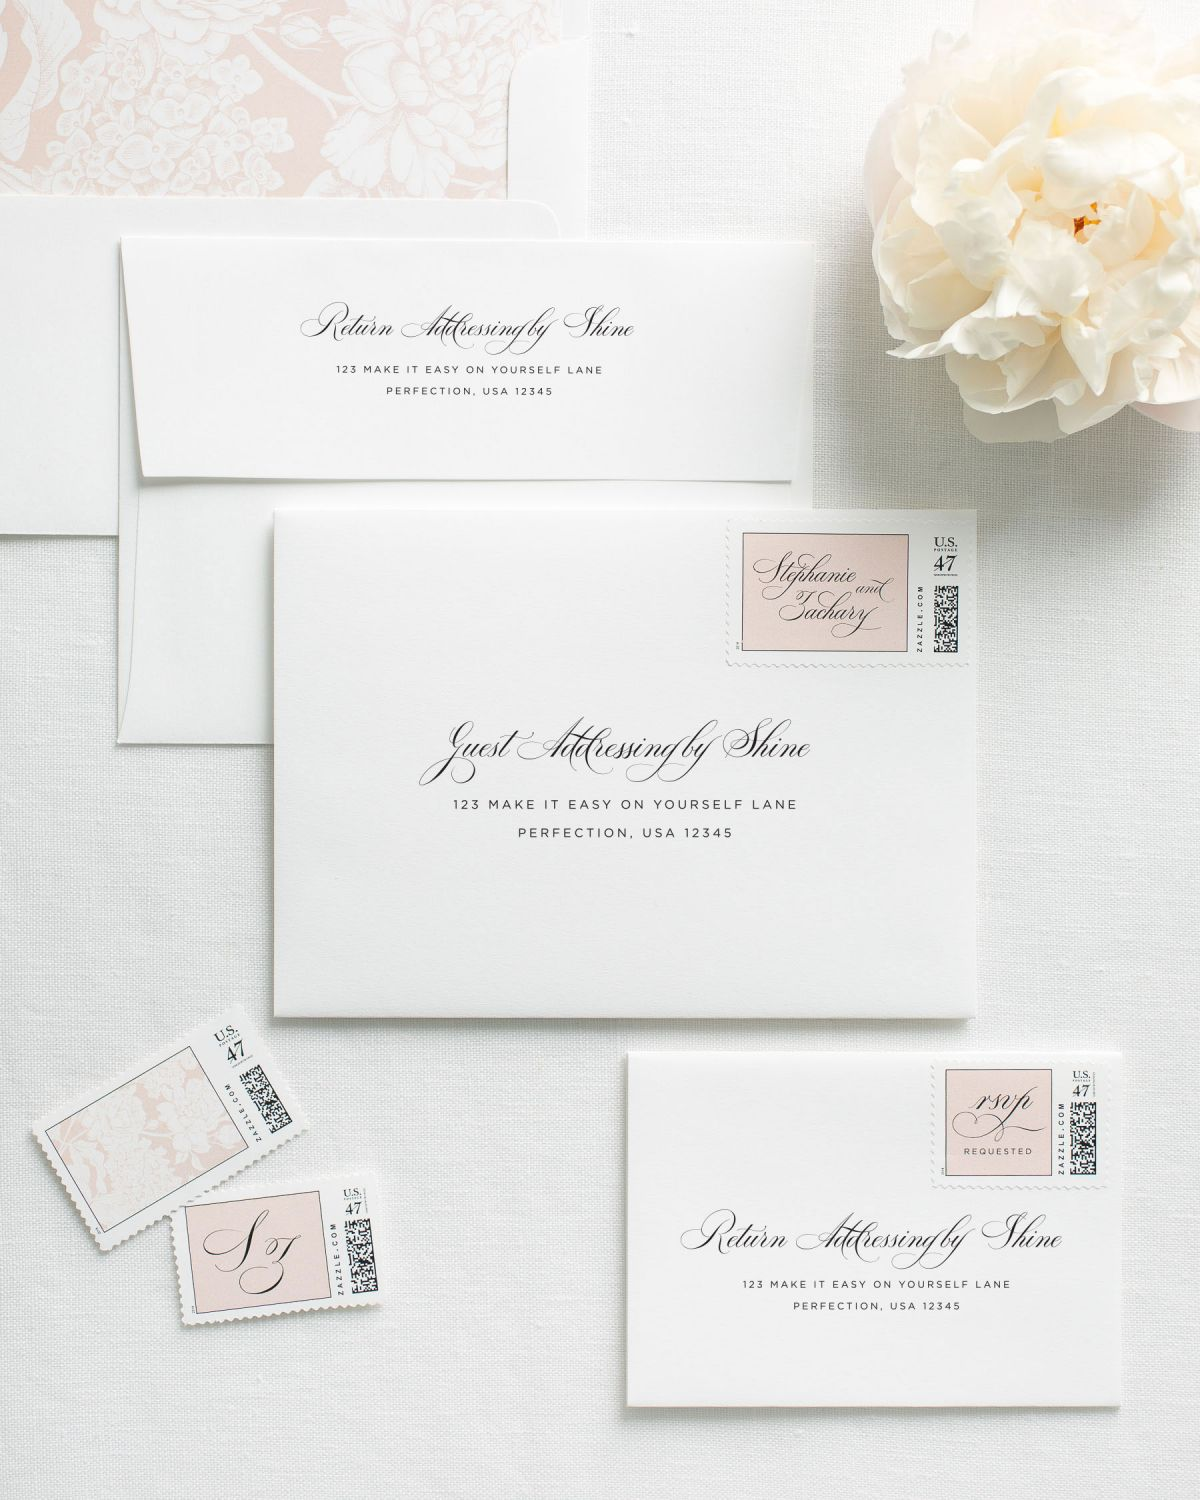 Invitation Envelopes with Address Printing